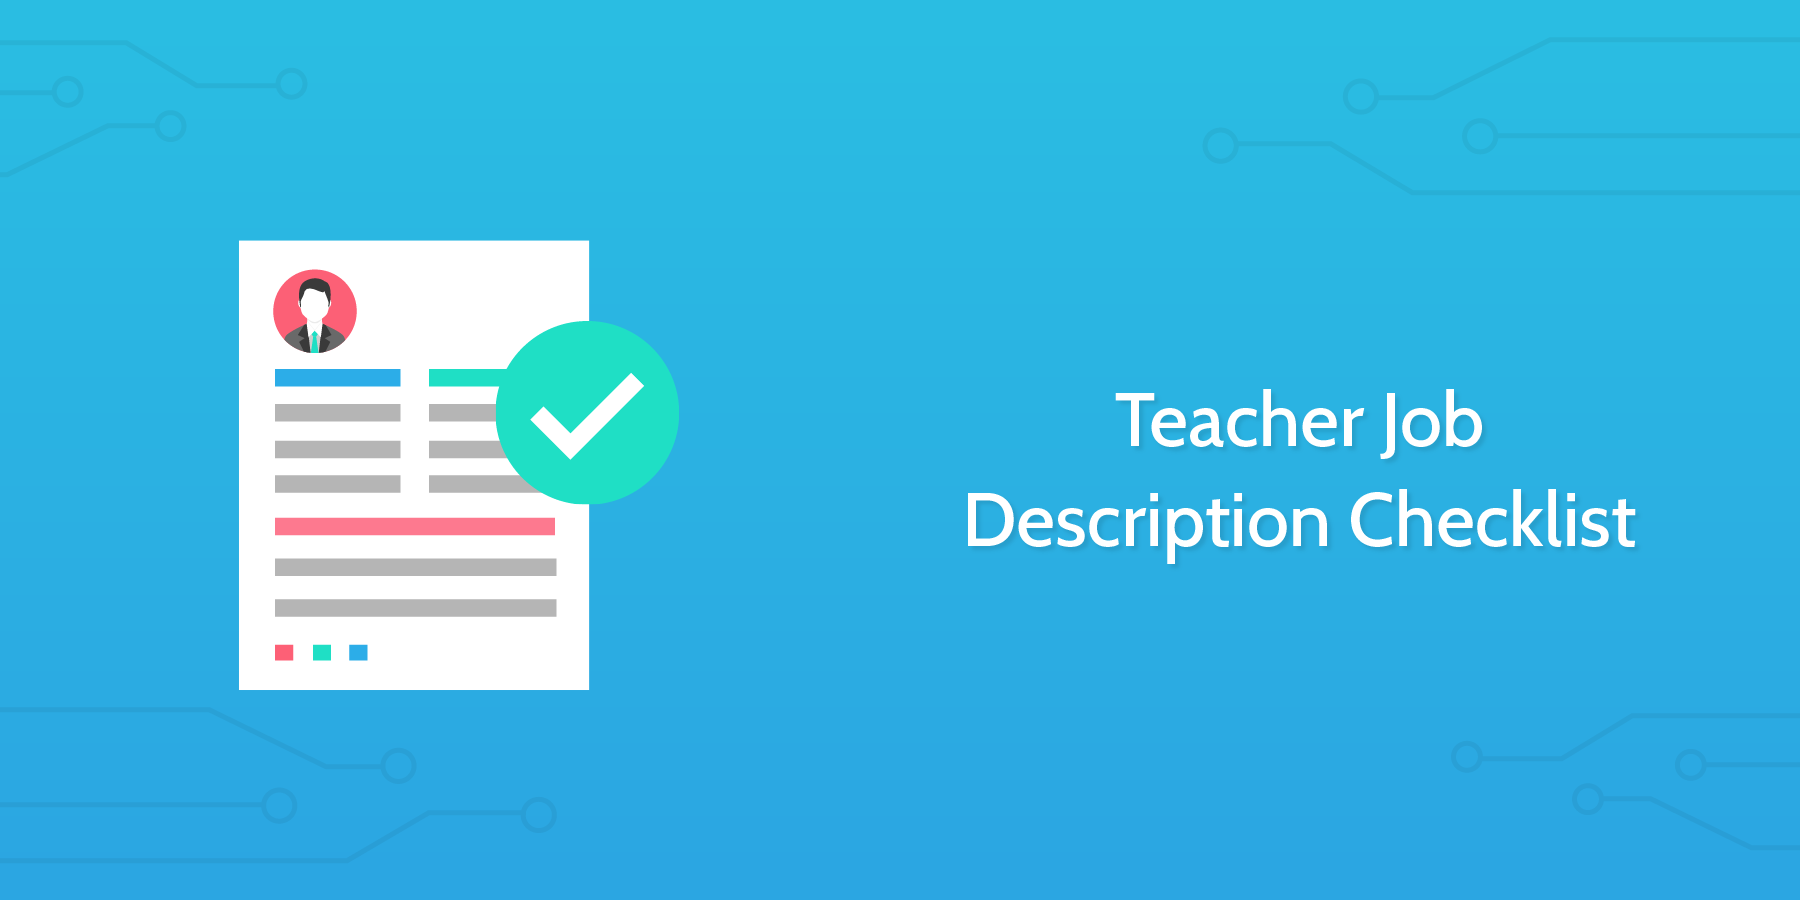 school checklists teacher job description checklist